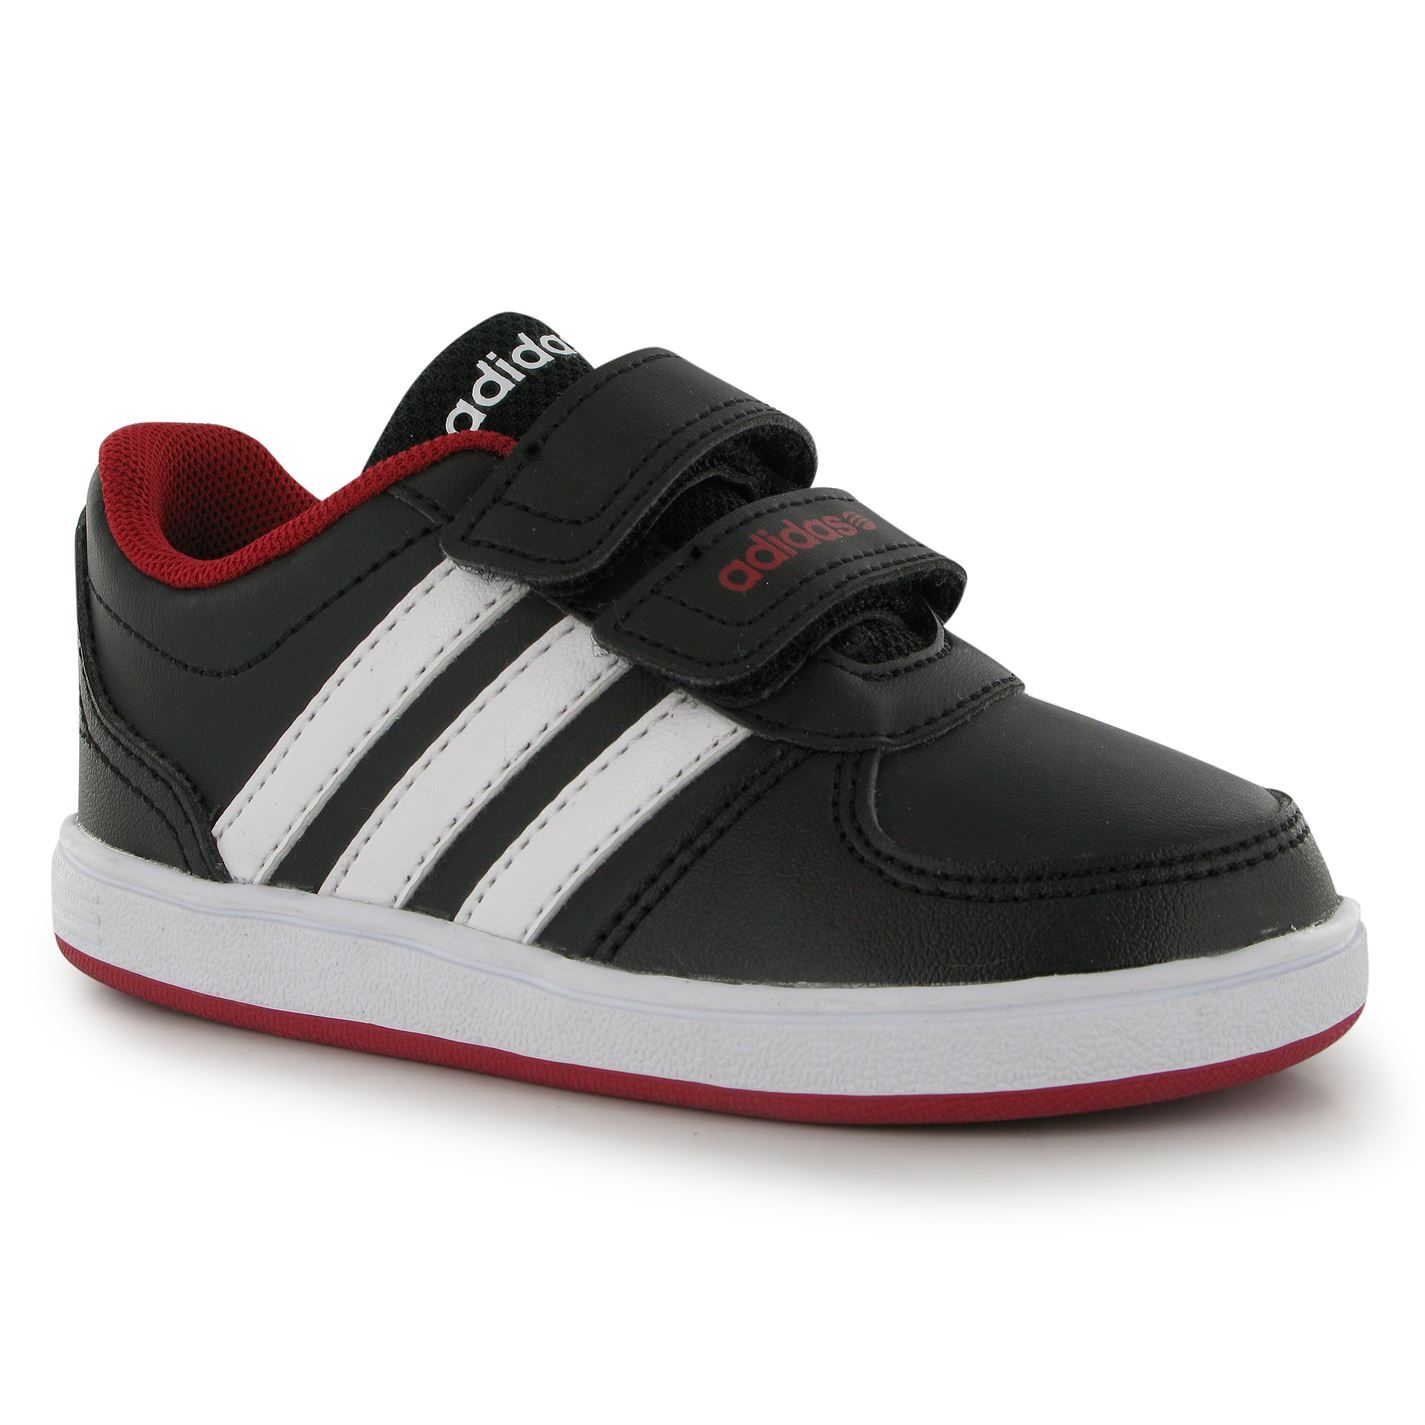 adidas neo baby trainers